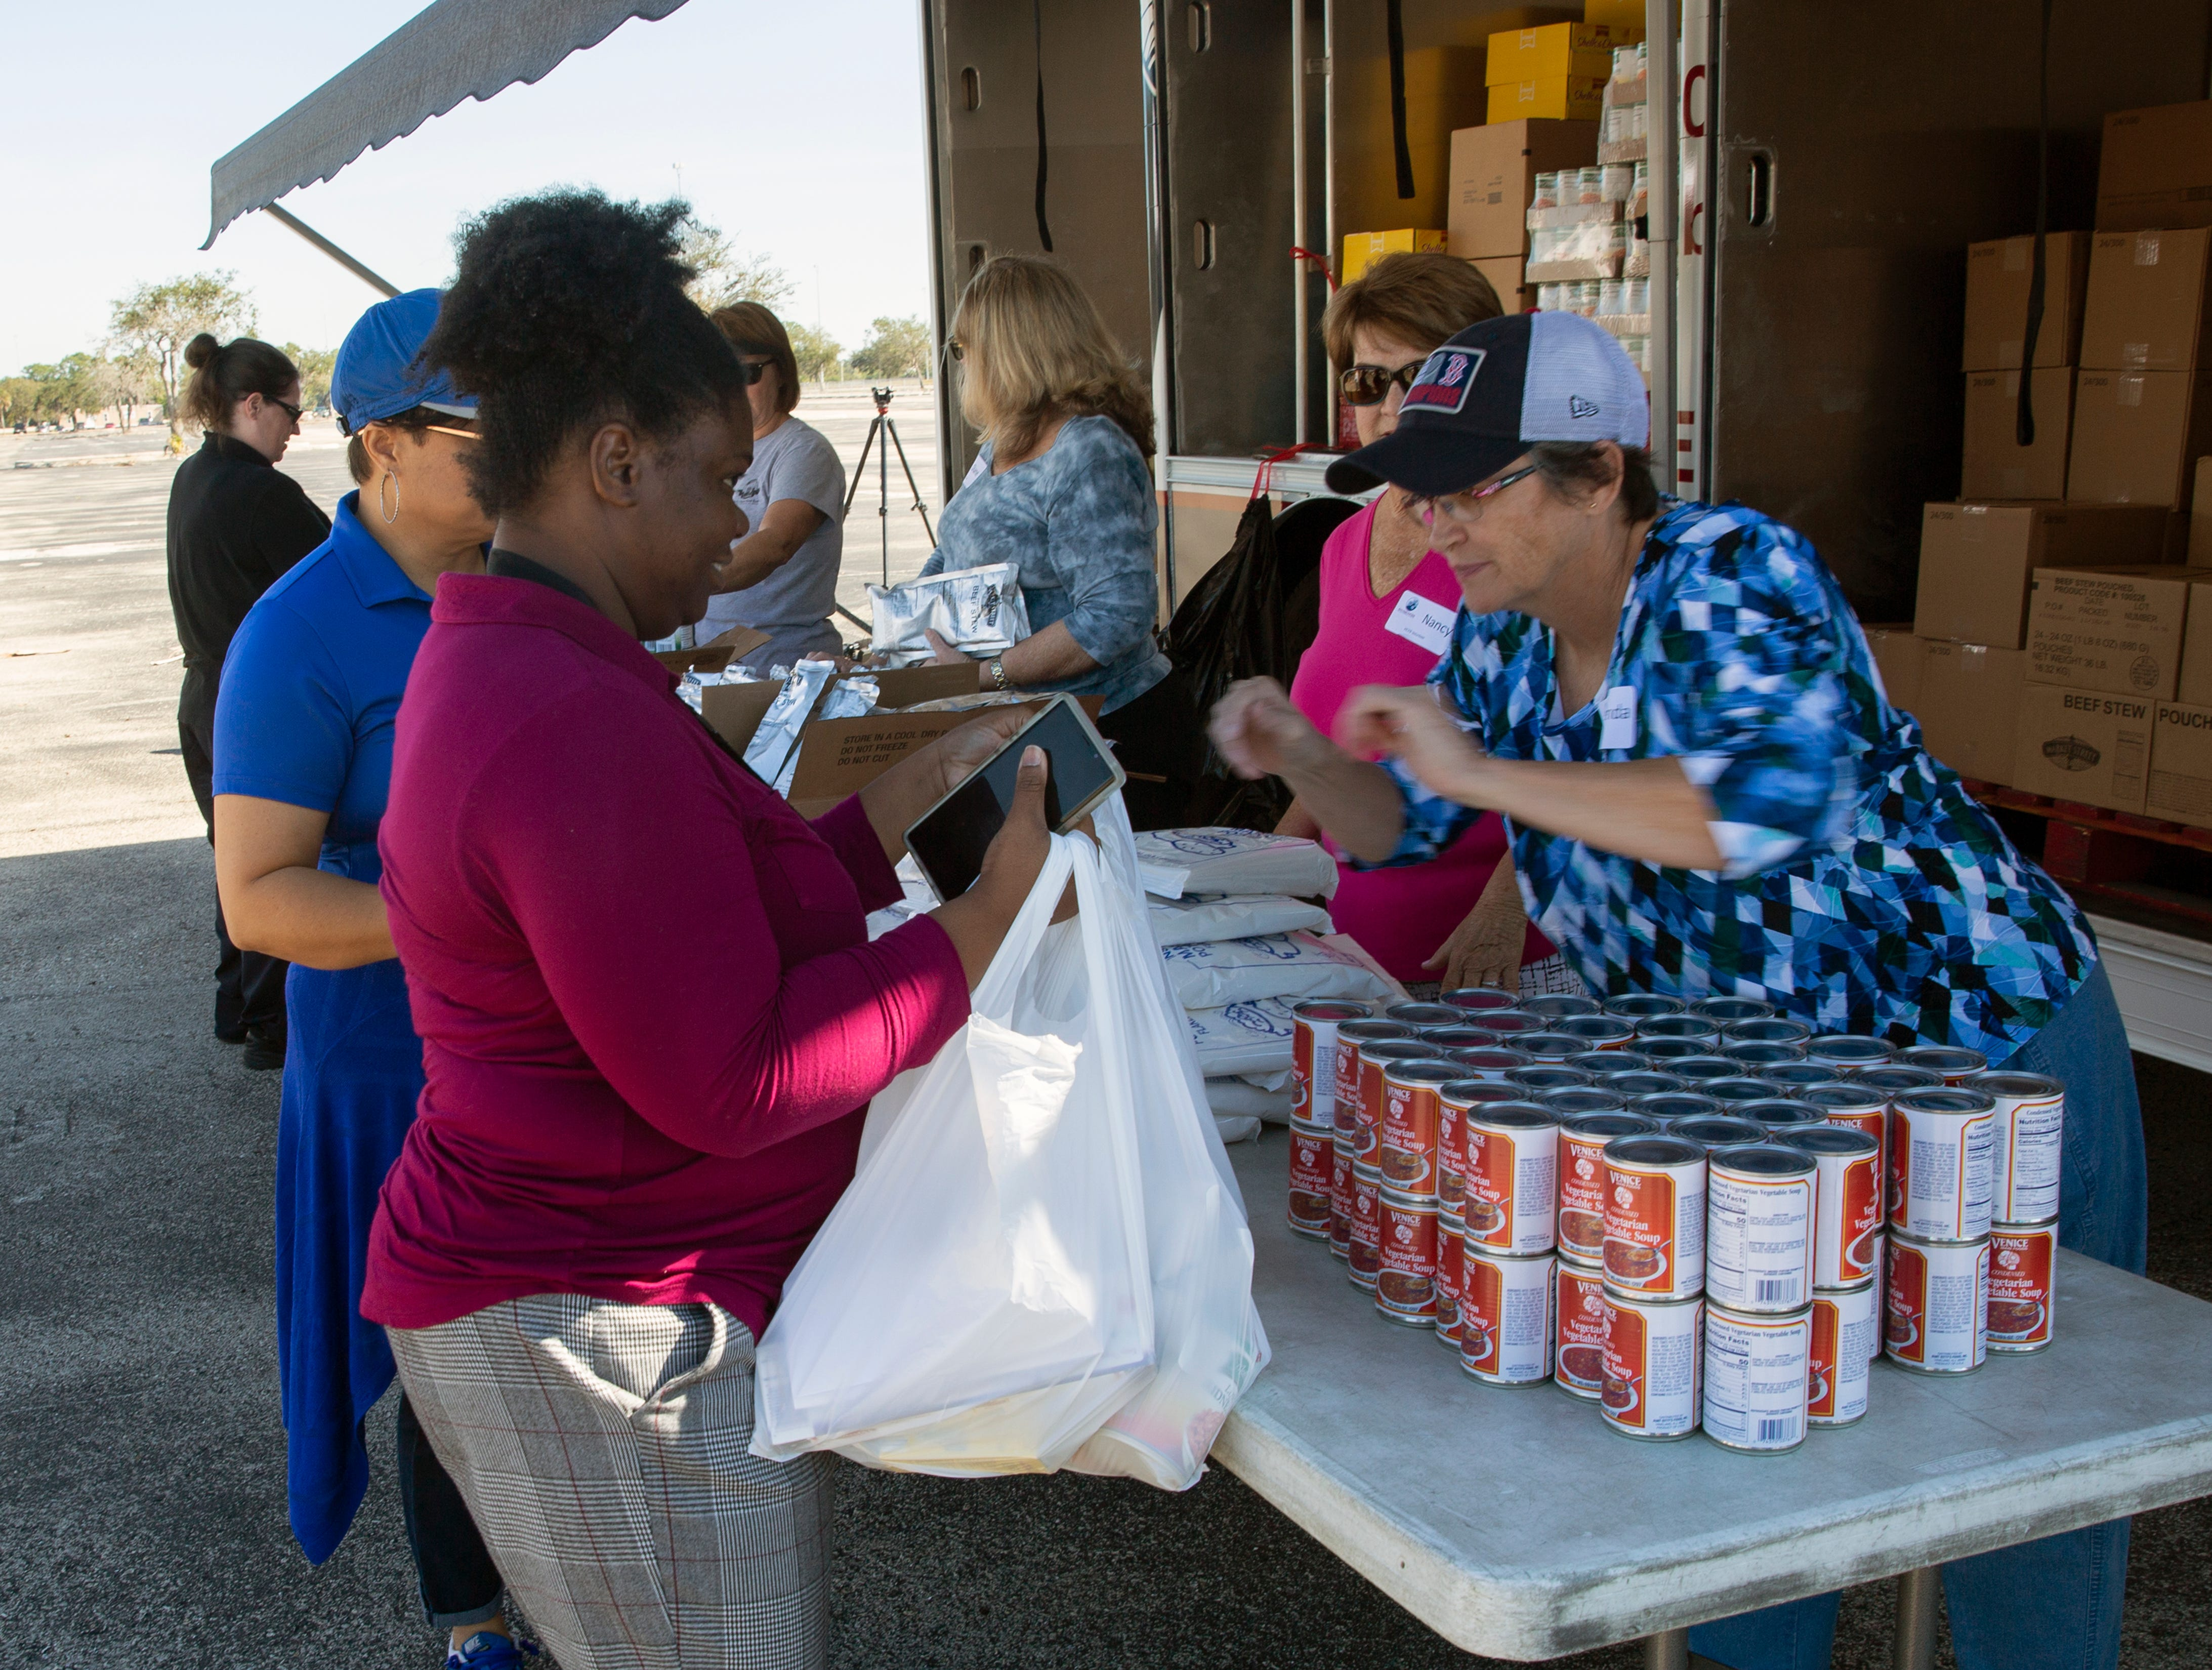 Volunteers distribute food to furloughed federal employees and airport workers, Friday, Jan. 18, 2019, at the Southwest Florida International Airport in Fort Myers.